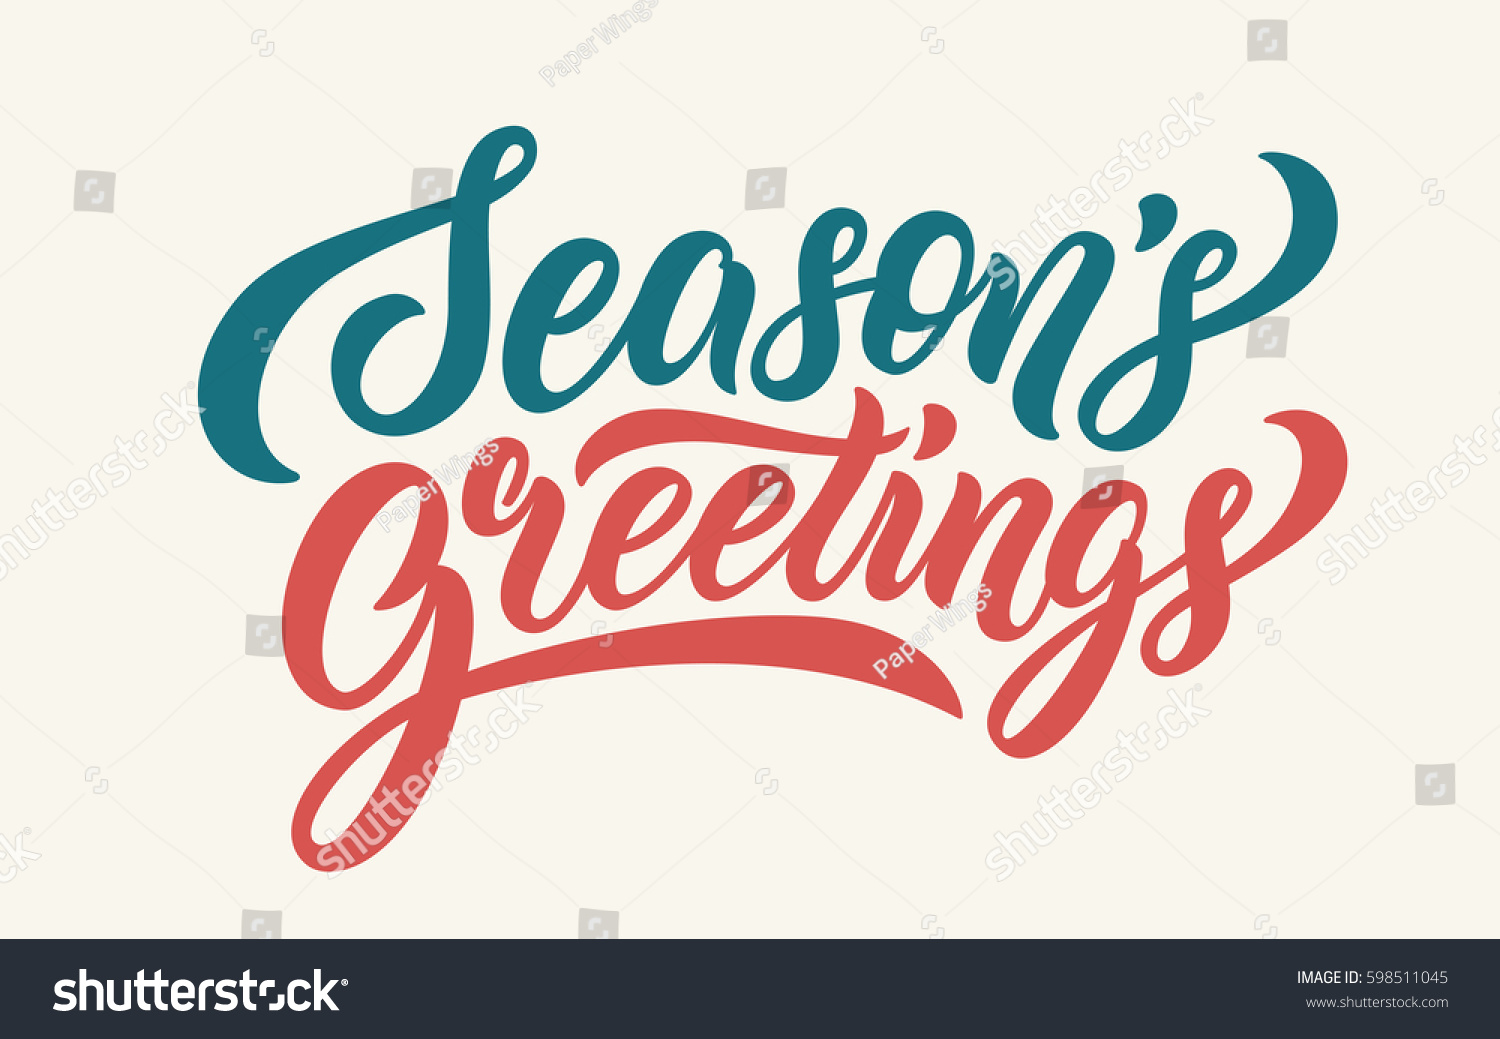 Seasons greetings lettering text banner vector stock vector seasons greetings lettering text banner vector illustration m4hsunfo